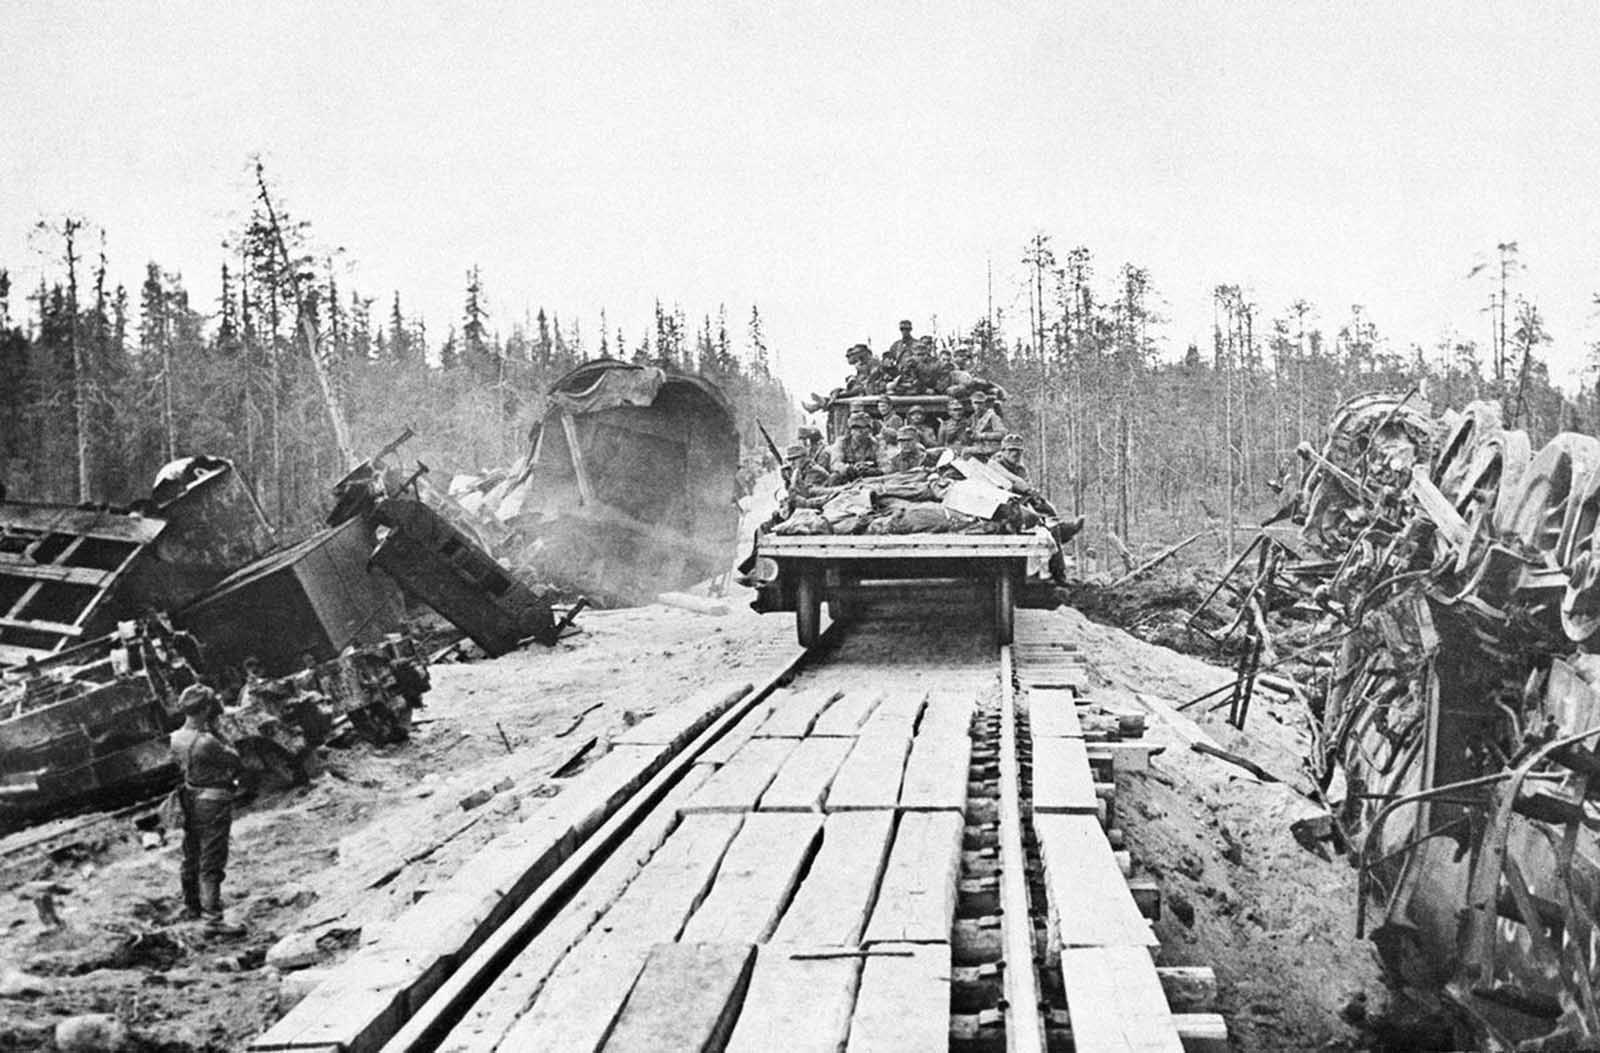 A Finnish troop train passes through a scene of an earlier explosion which wrecked one train, tearing up the rails and embankment, on October 19, 1941.